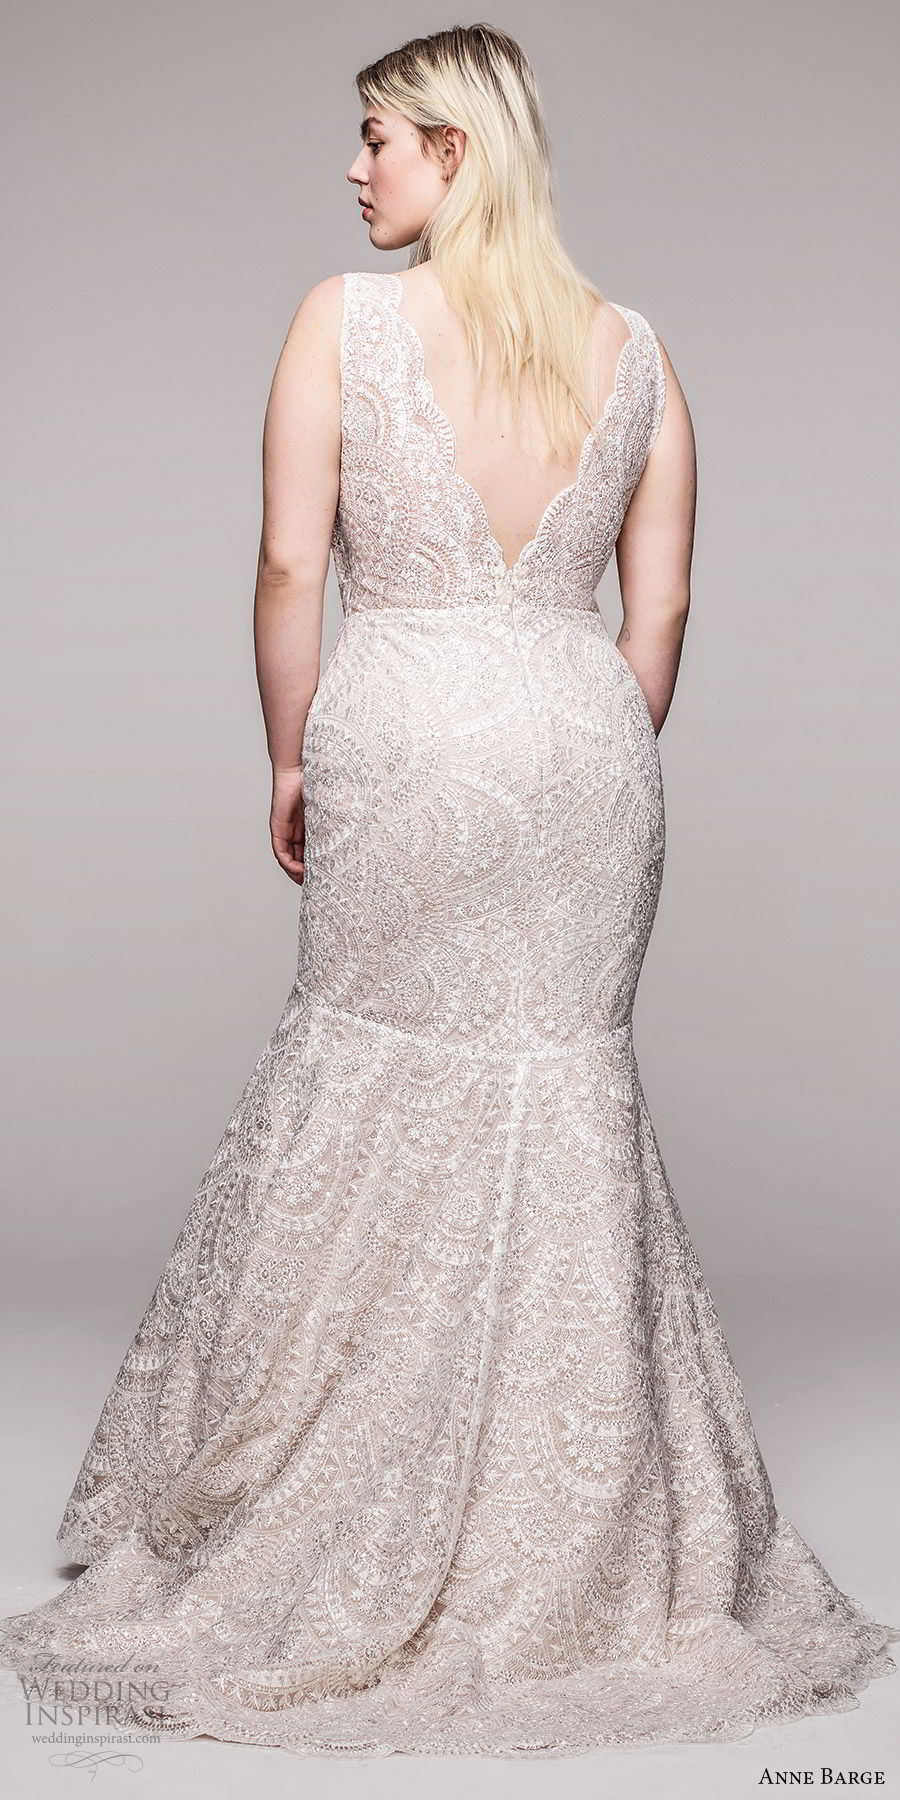 anne barge 2020 bridal plus size sleeveless thick straps v neckline embellished lace fit flare mermaid wedding dress (2) v back elegant chapel train bv